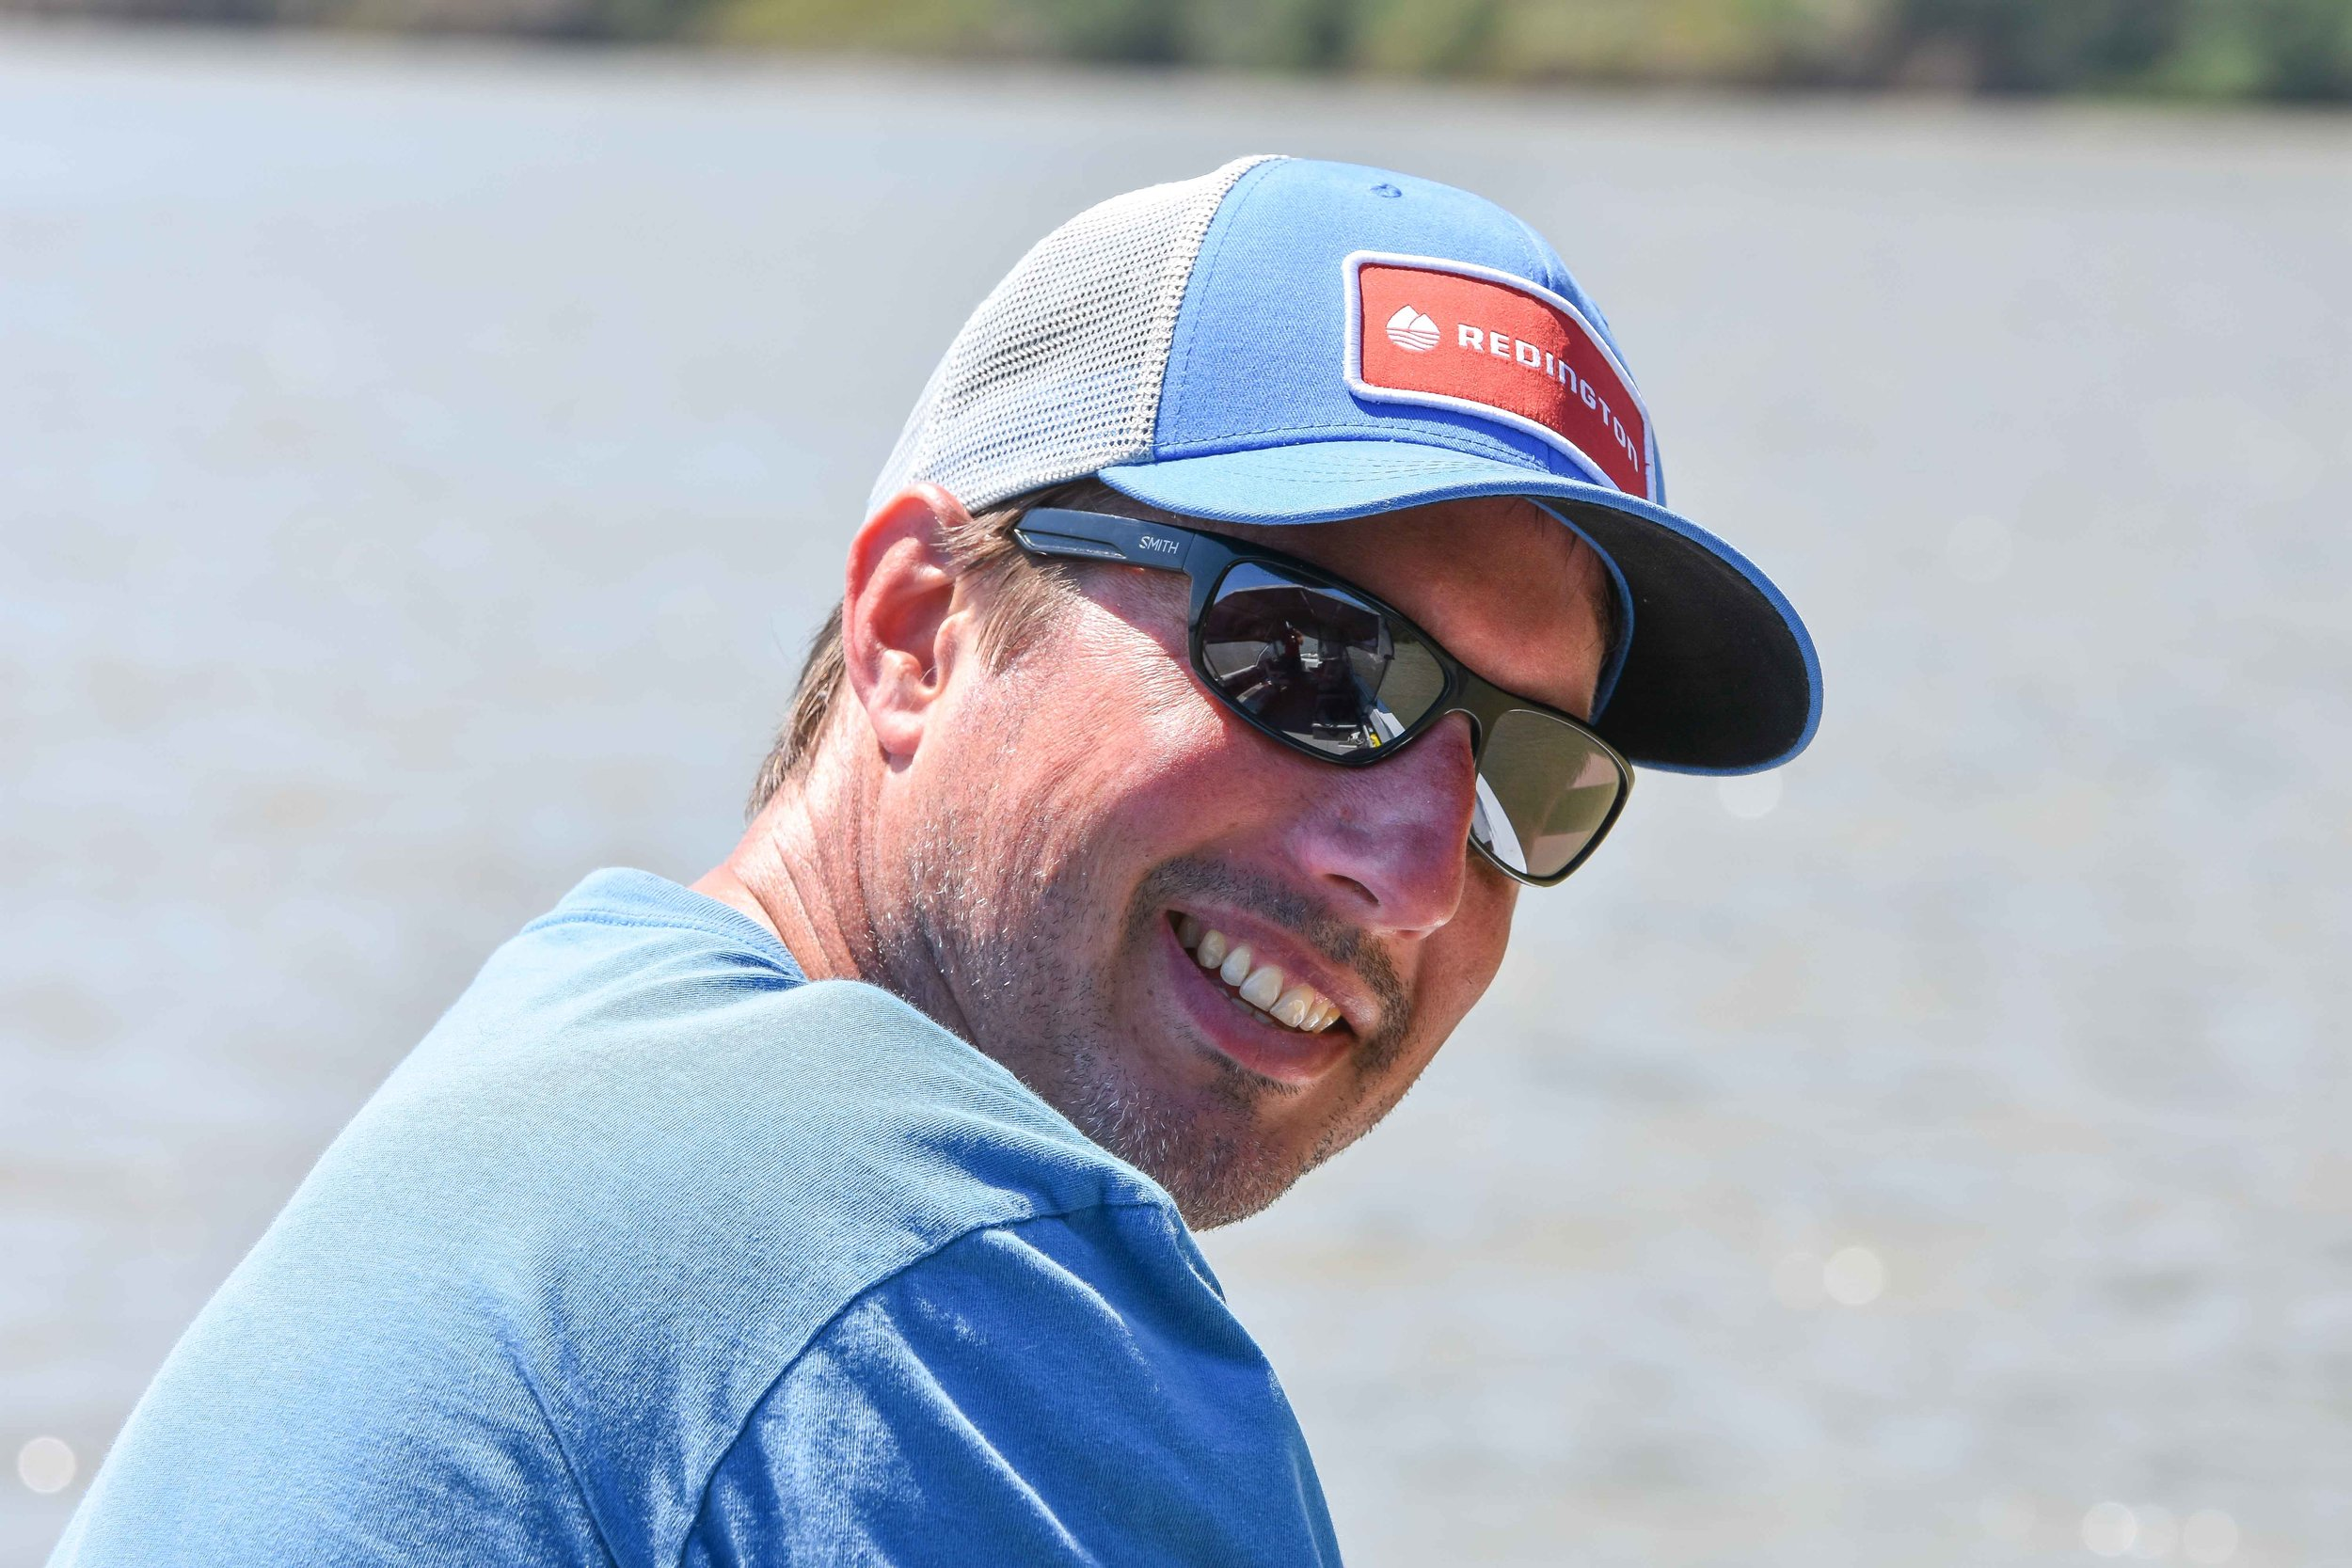 Anthony has been providing fishing tours for over 20 years. Not only does he look like a pro, he is one.